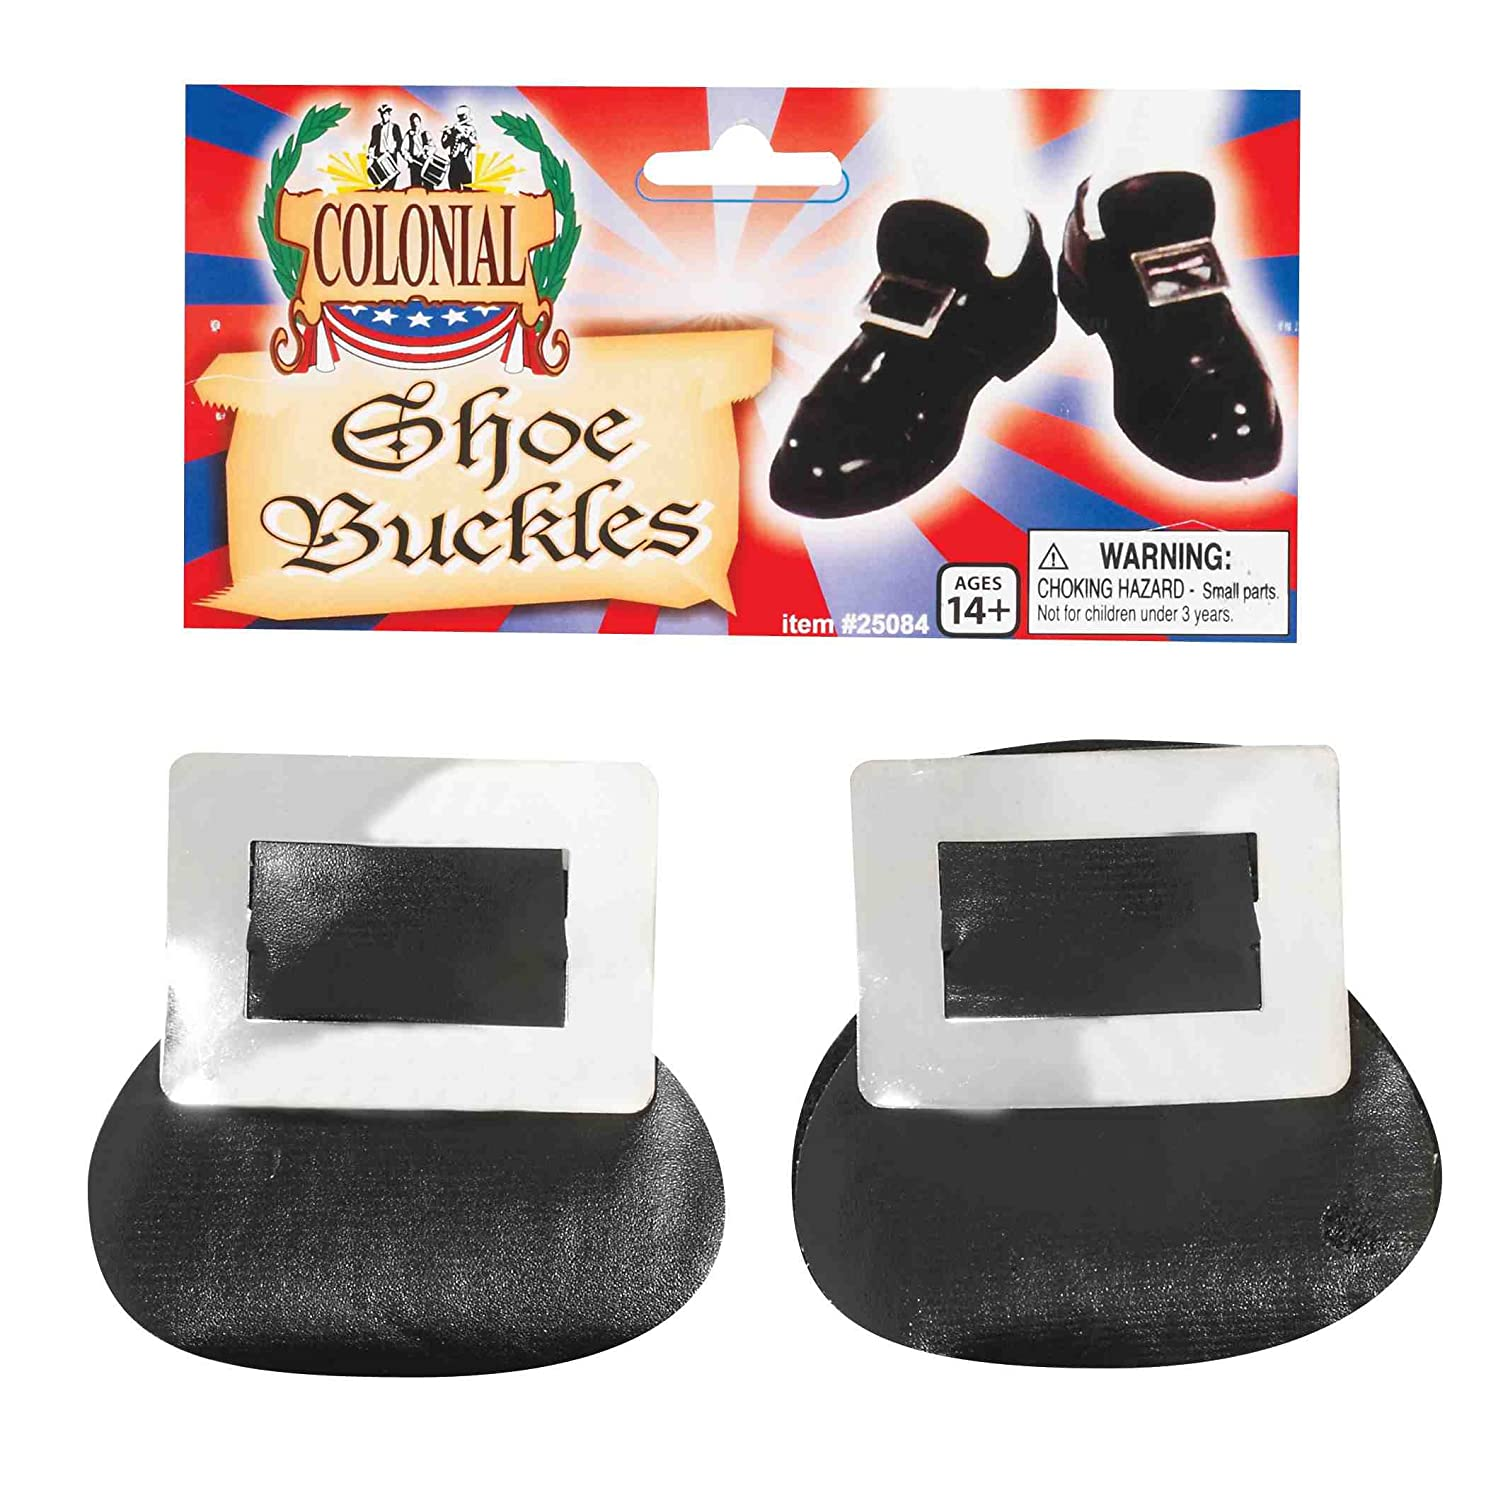 Forum Novelties Colonial Christmas Silver Shoe Buckles One Size 25084